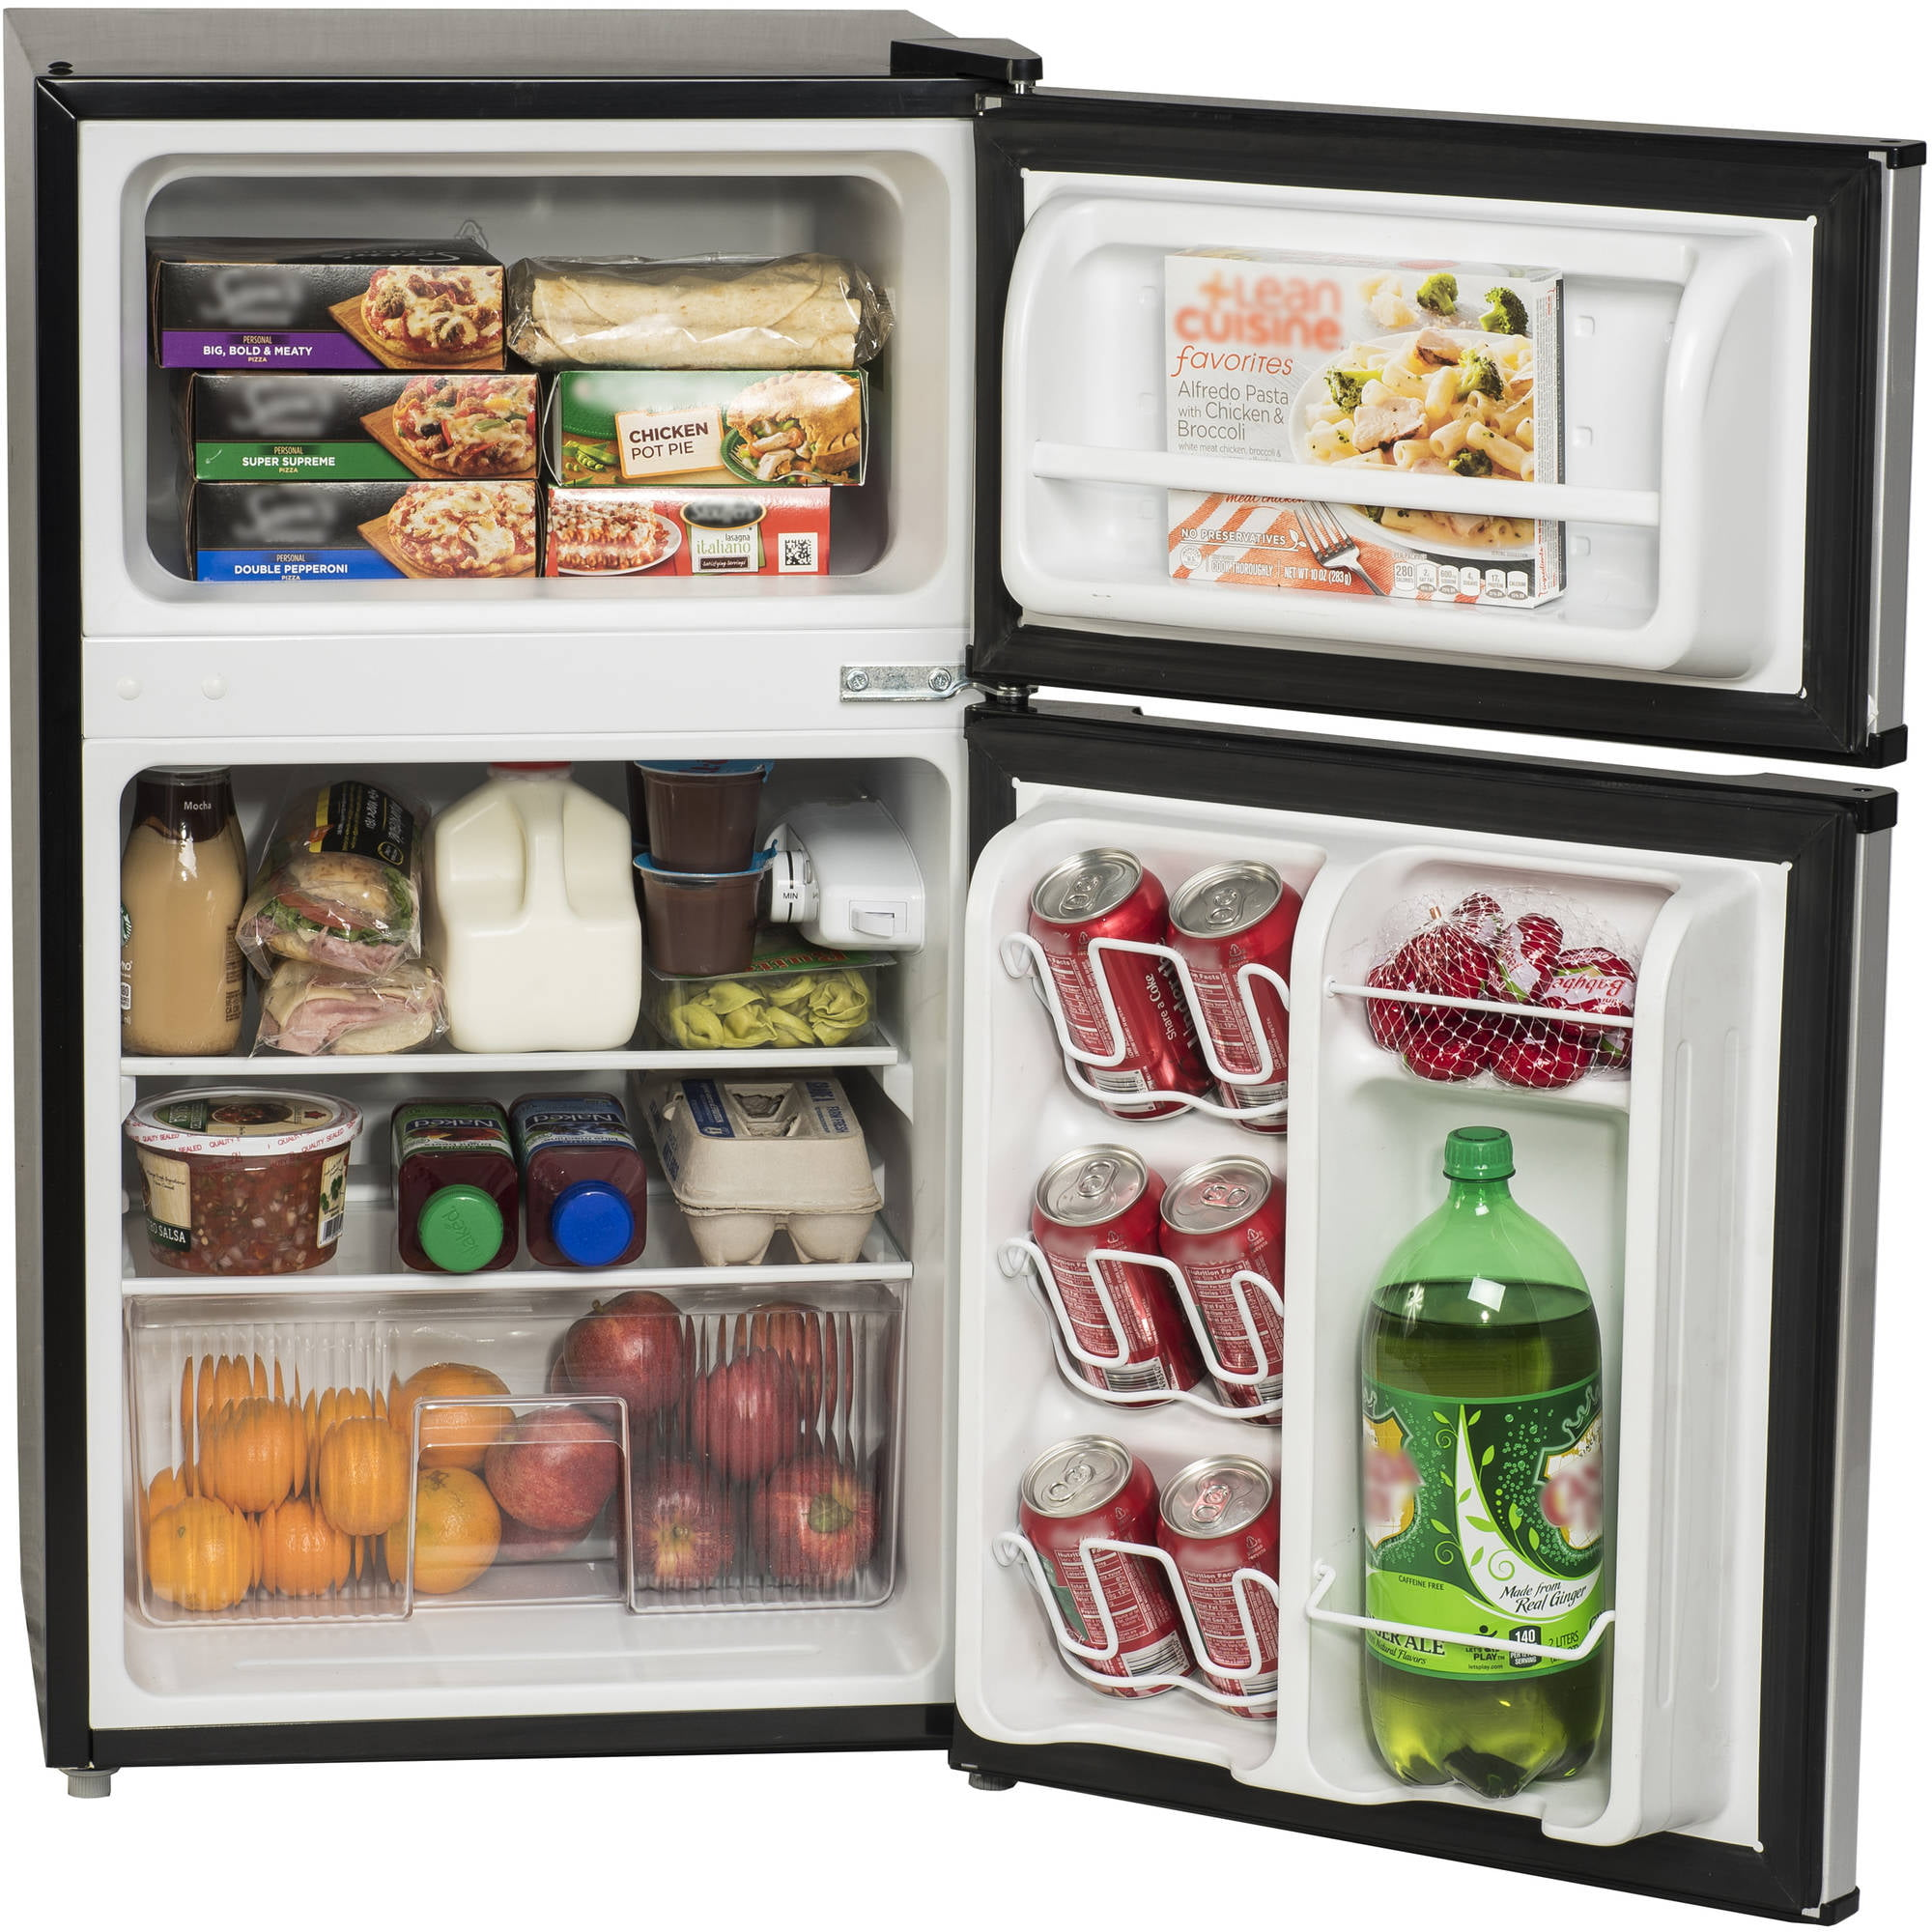 Arctic King 3.2 Cu Ft Two Door Mini Fridge With Freezer, Black   Walmart.com